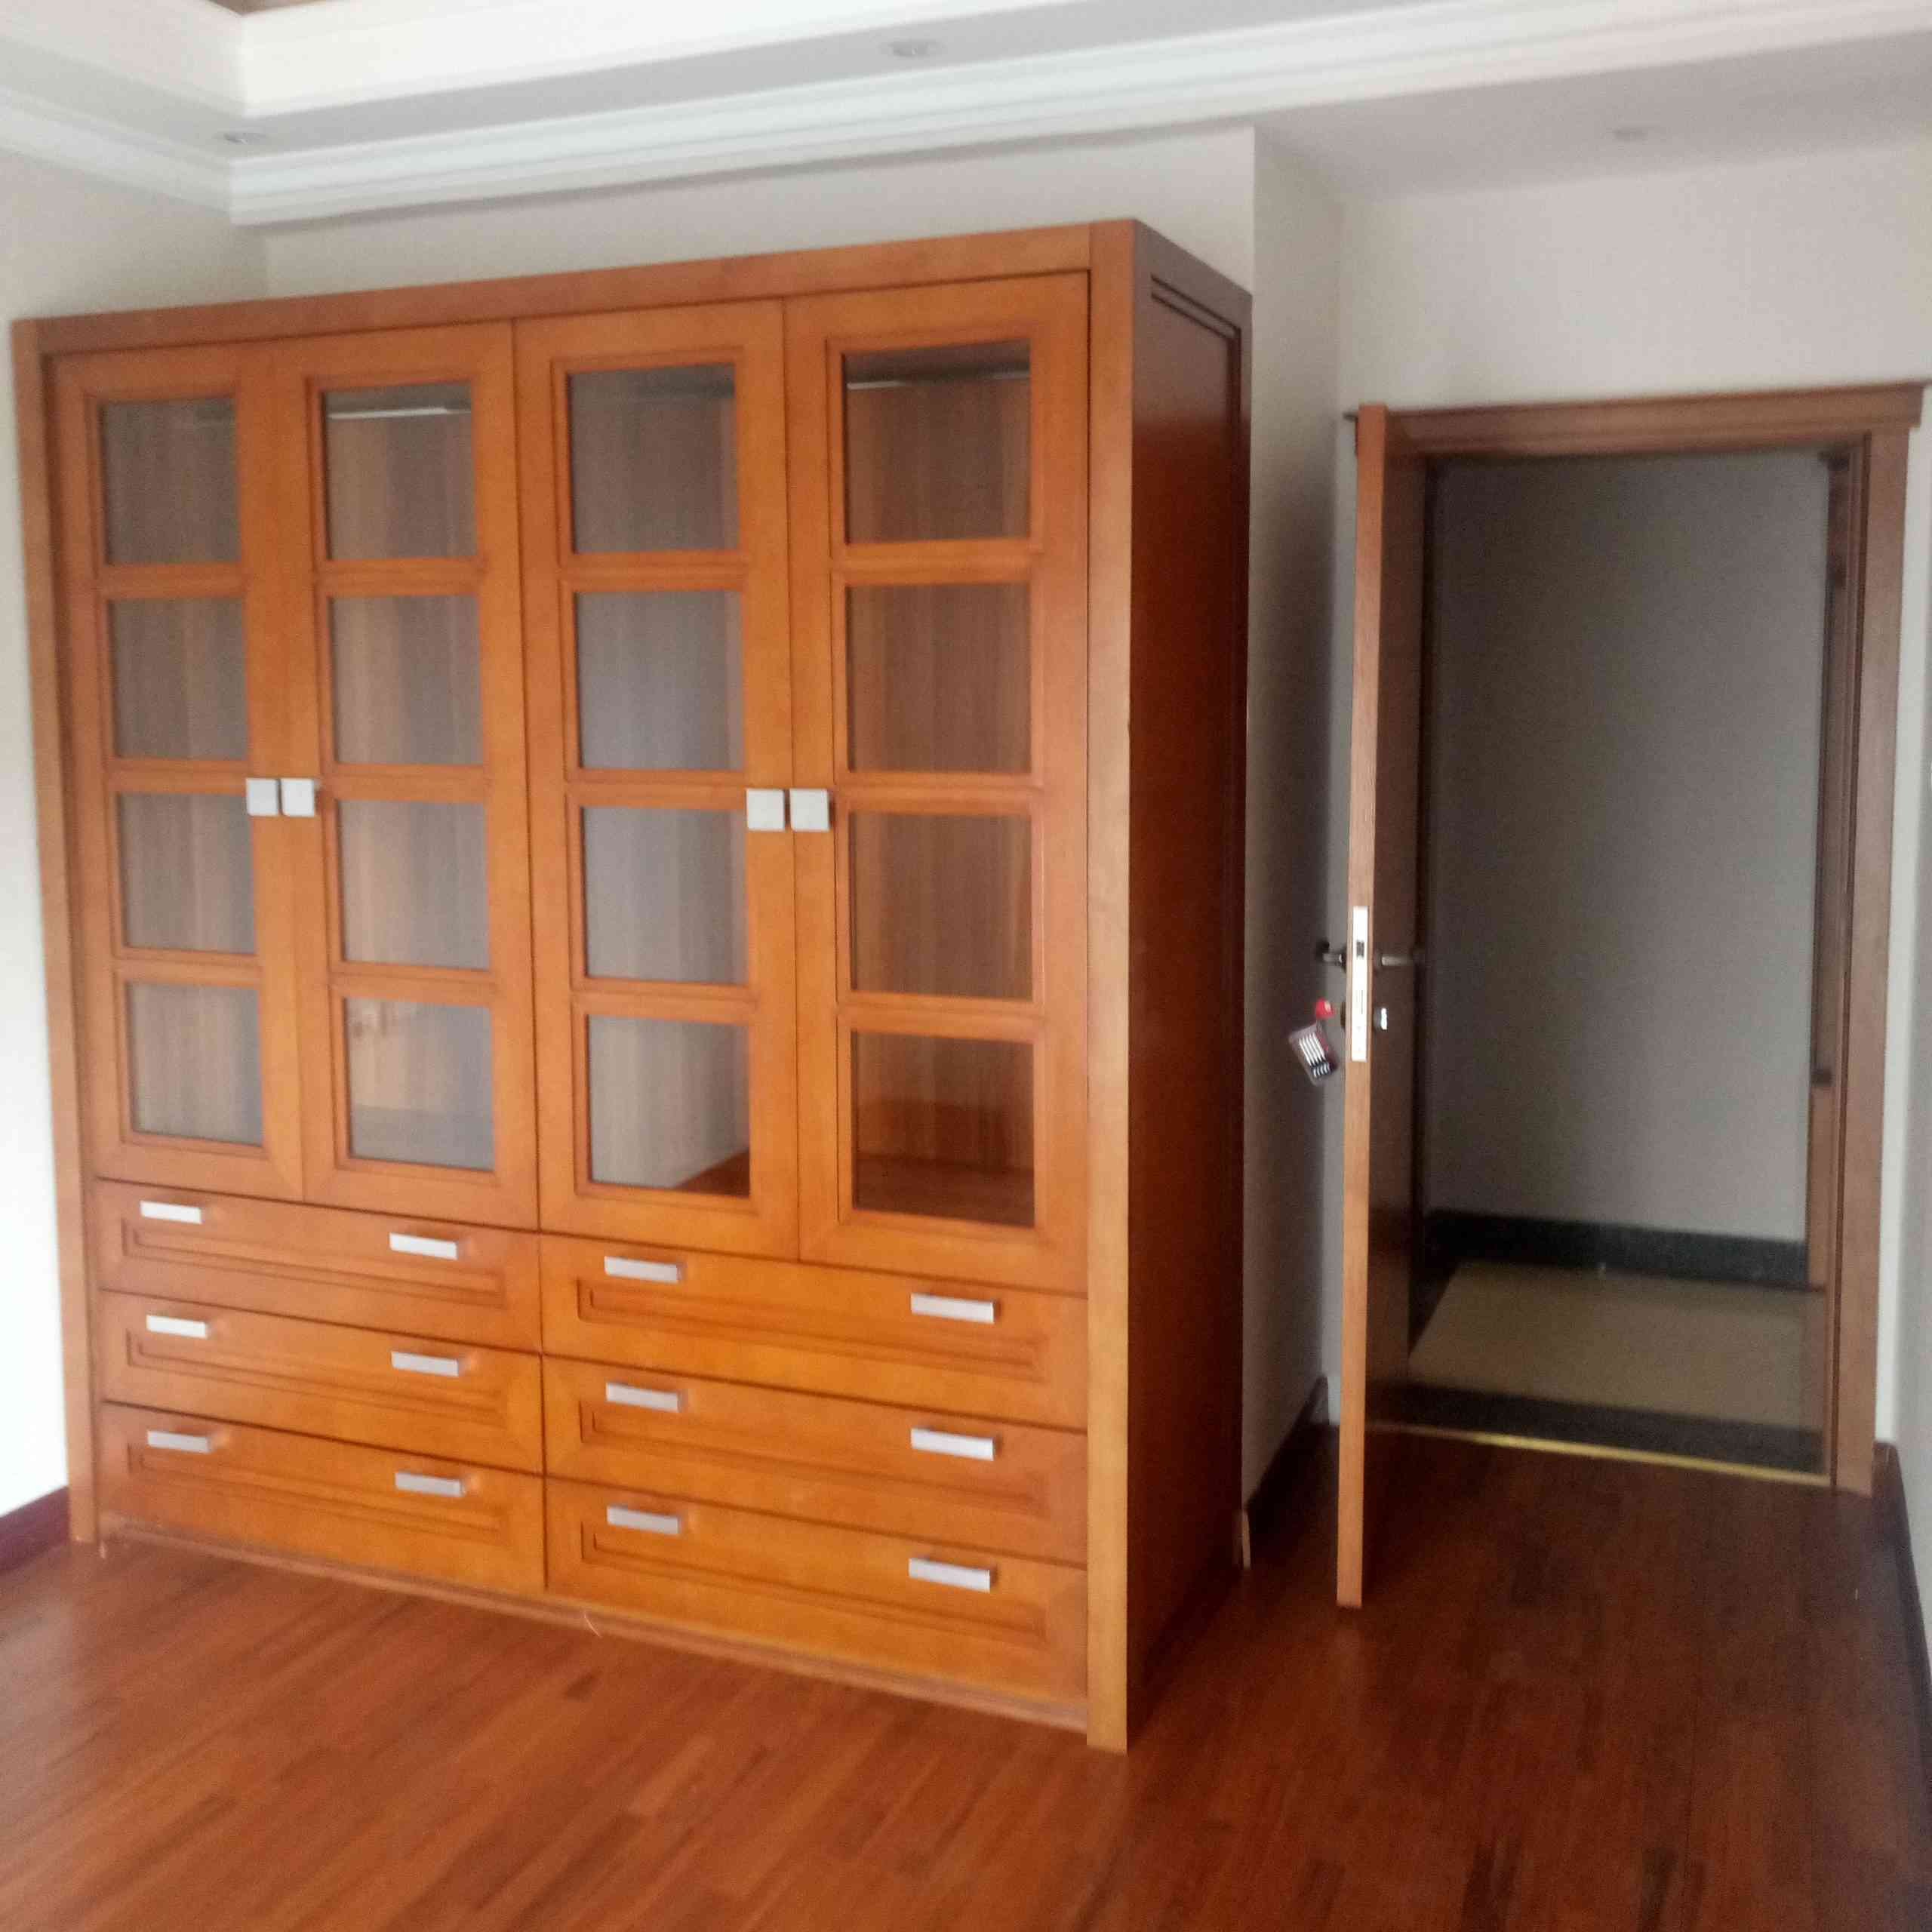 4 Bedroom Lux Apartment For Rent At CMC